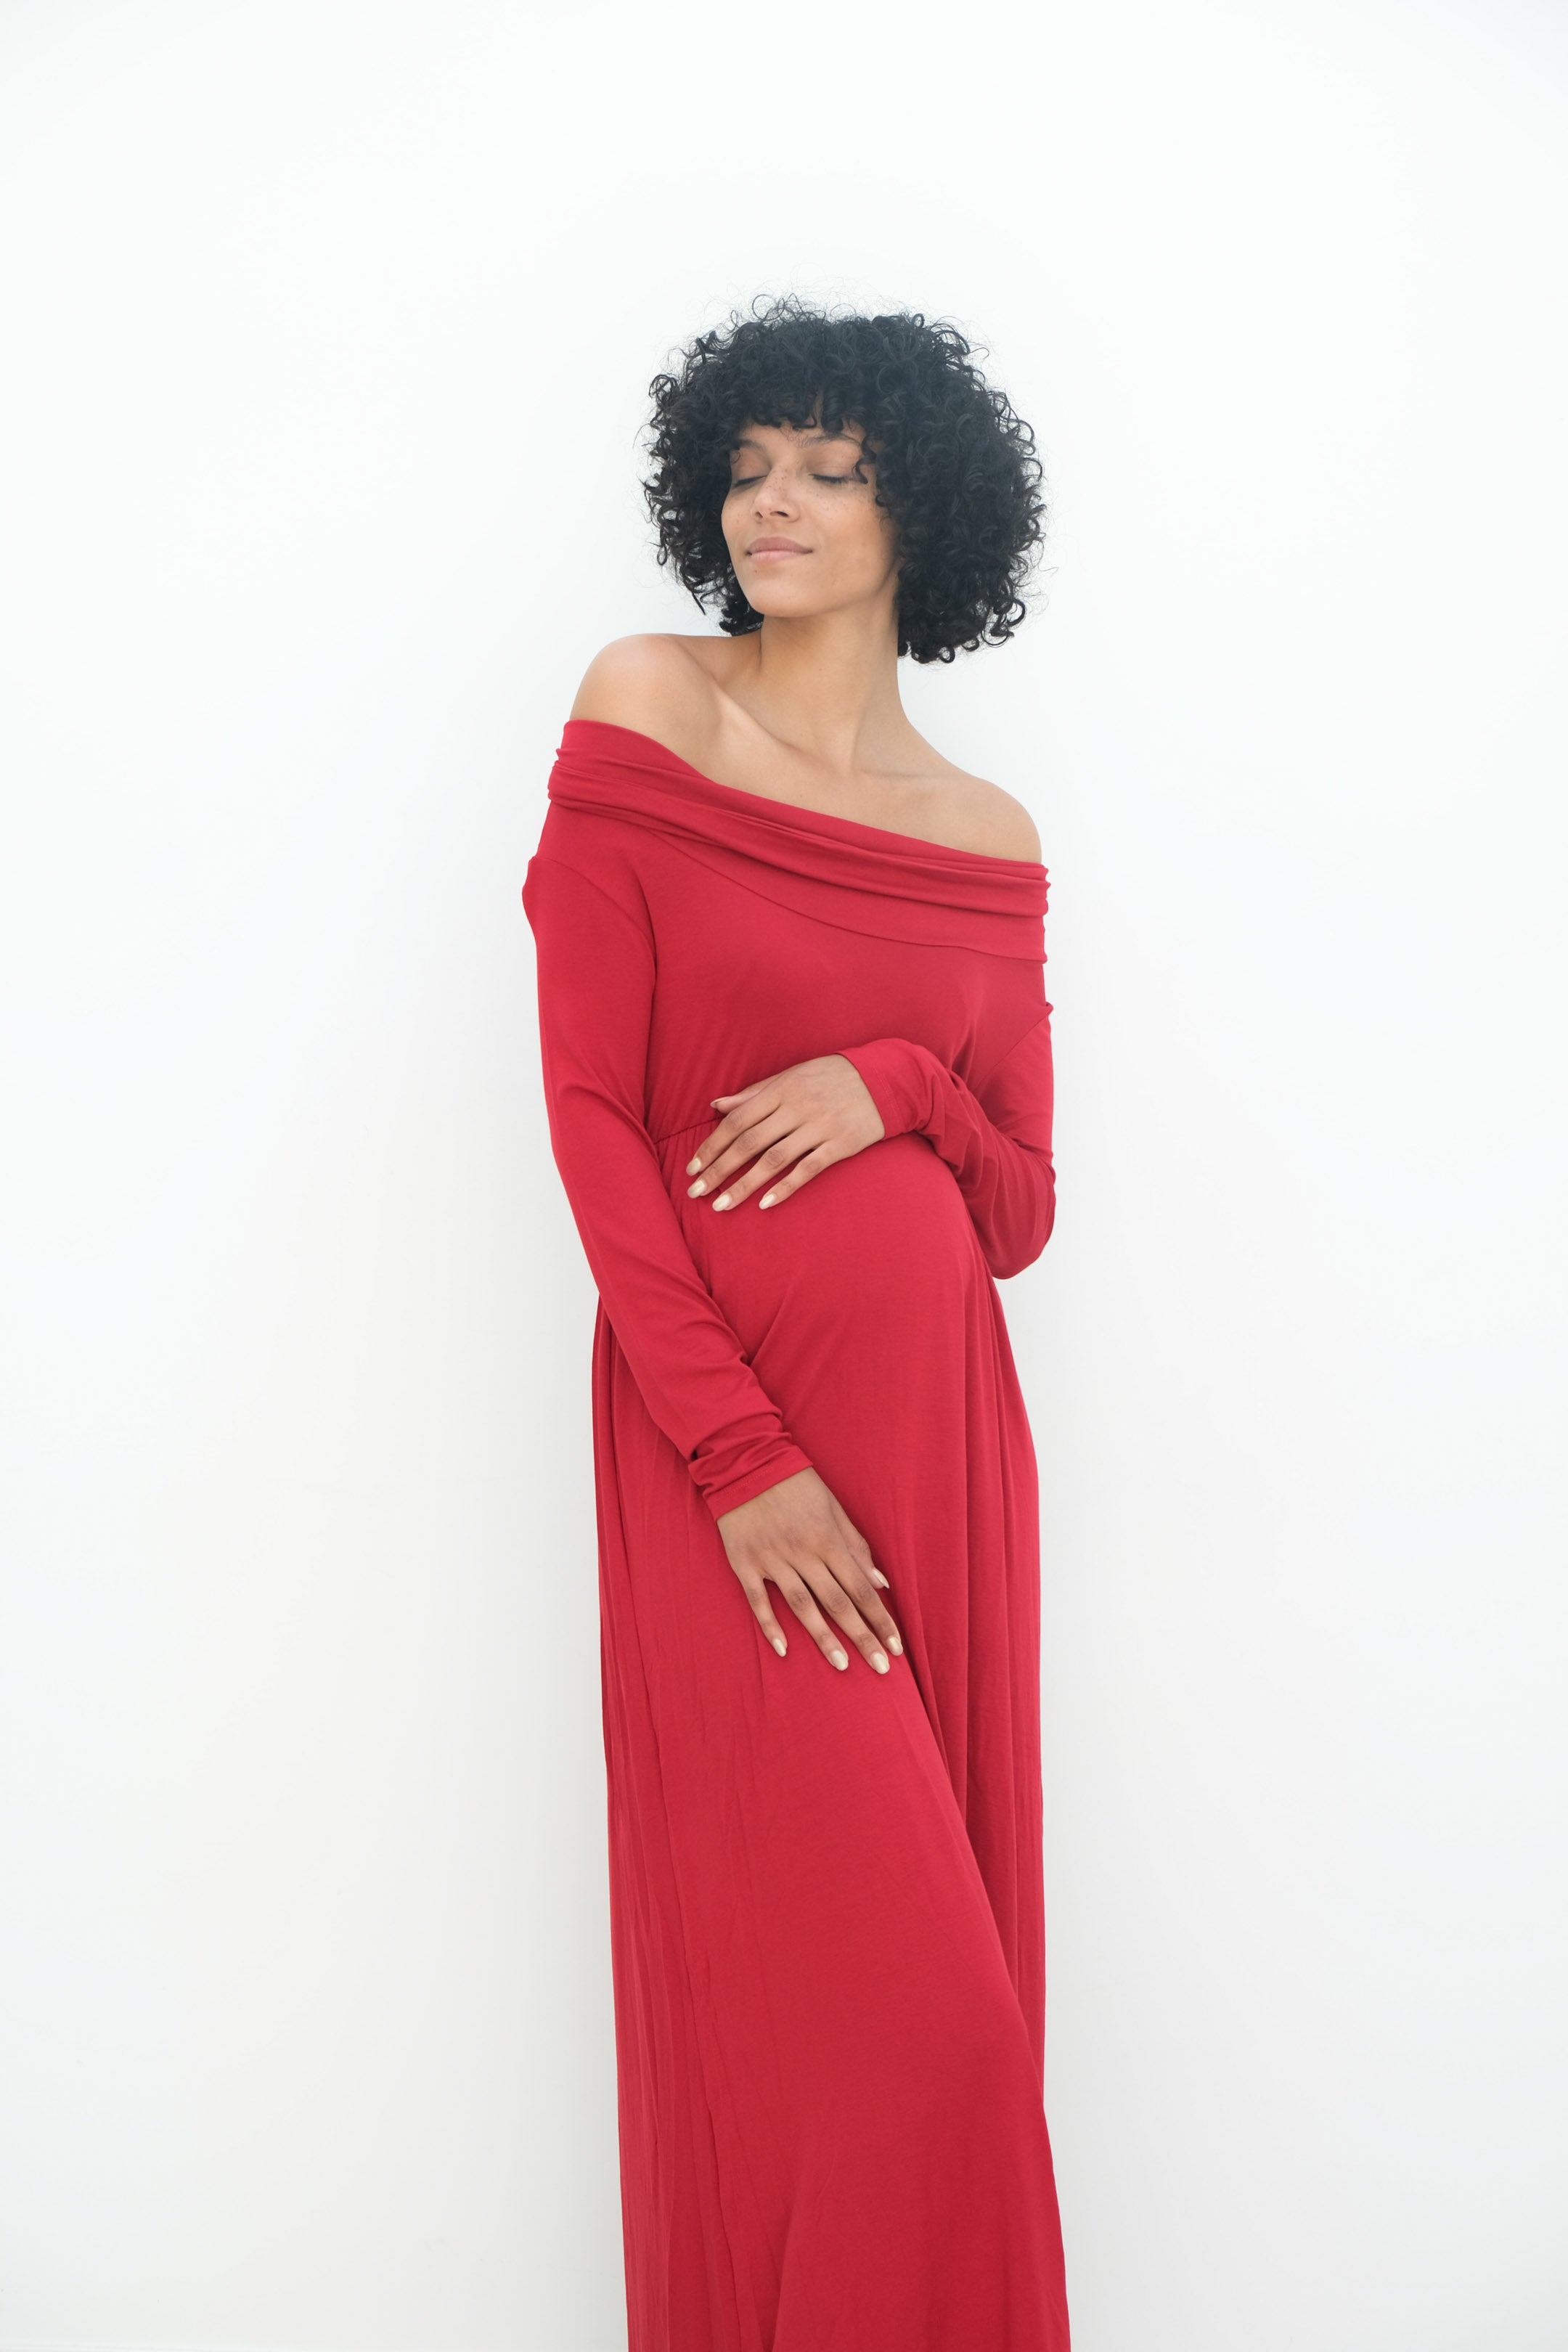 a lady wearing a bright red maternity gown called delaney